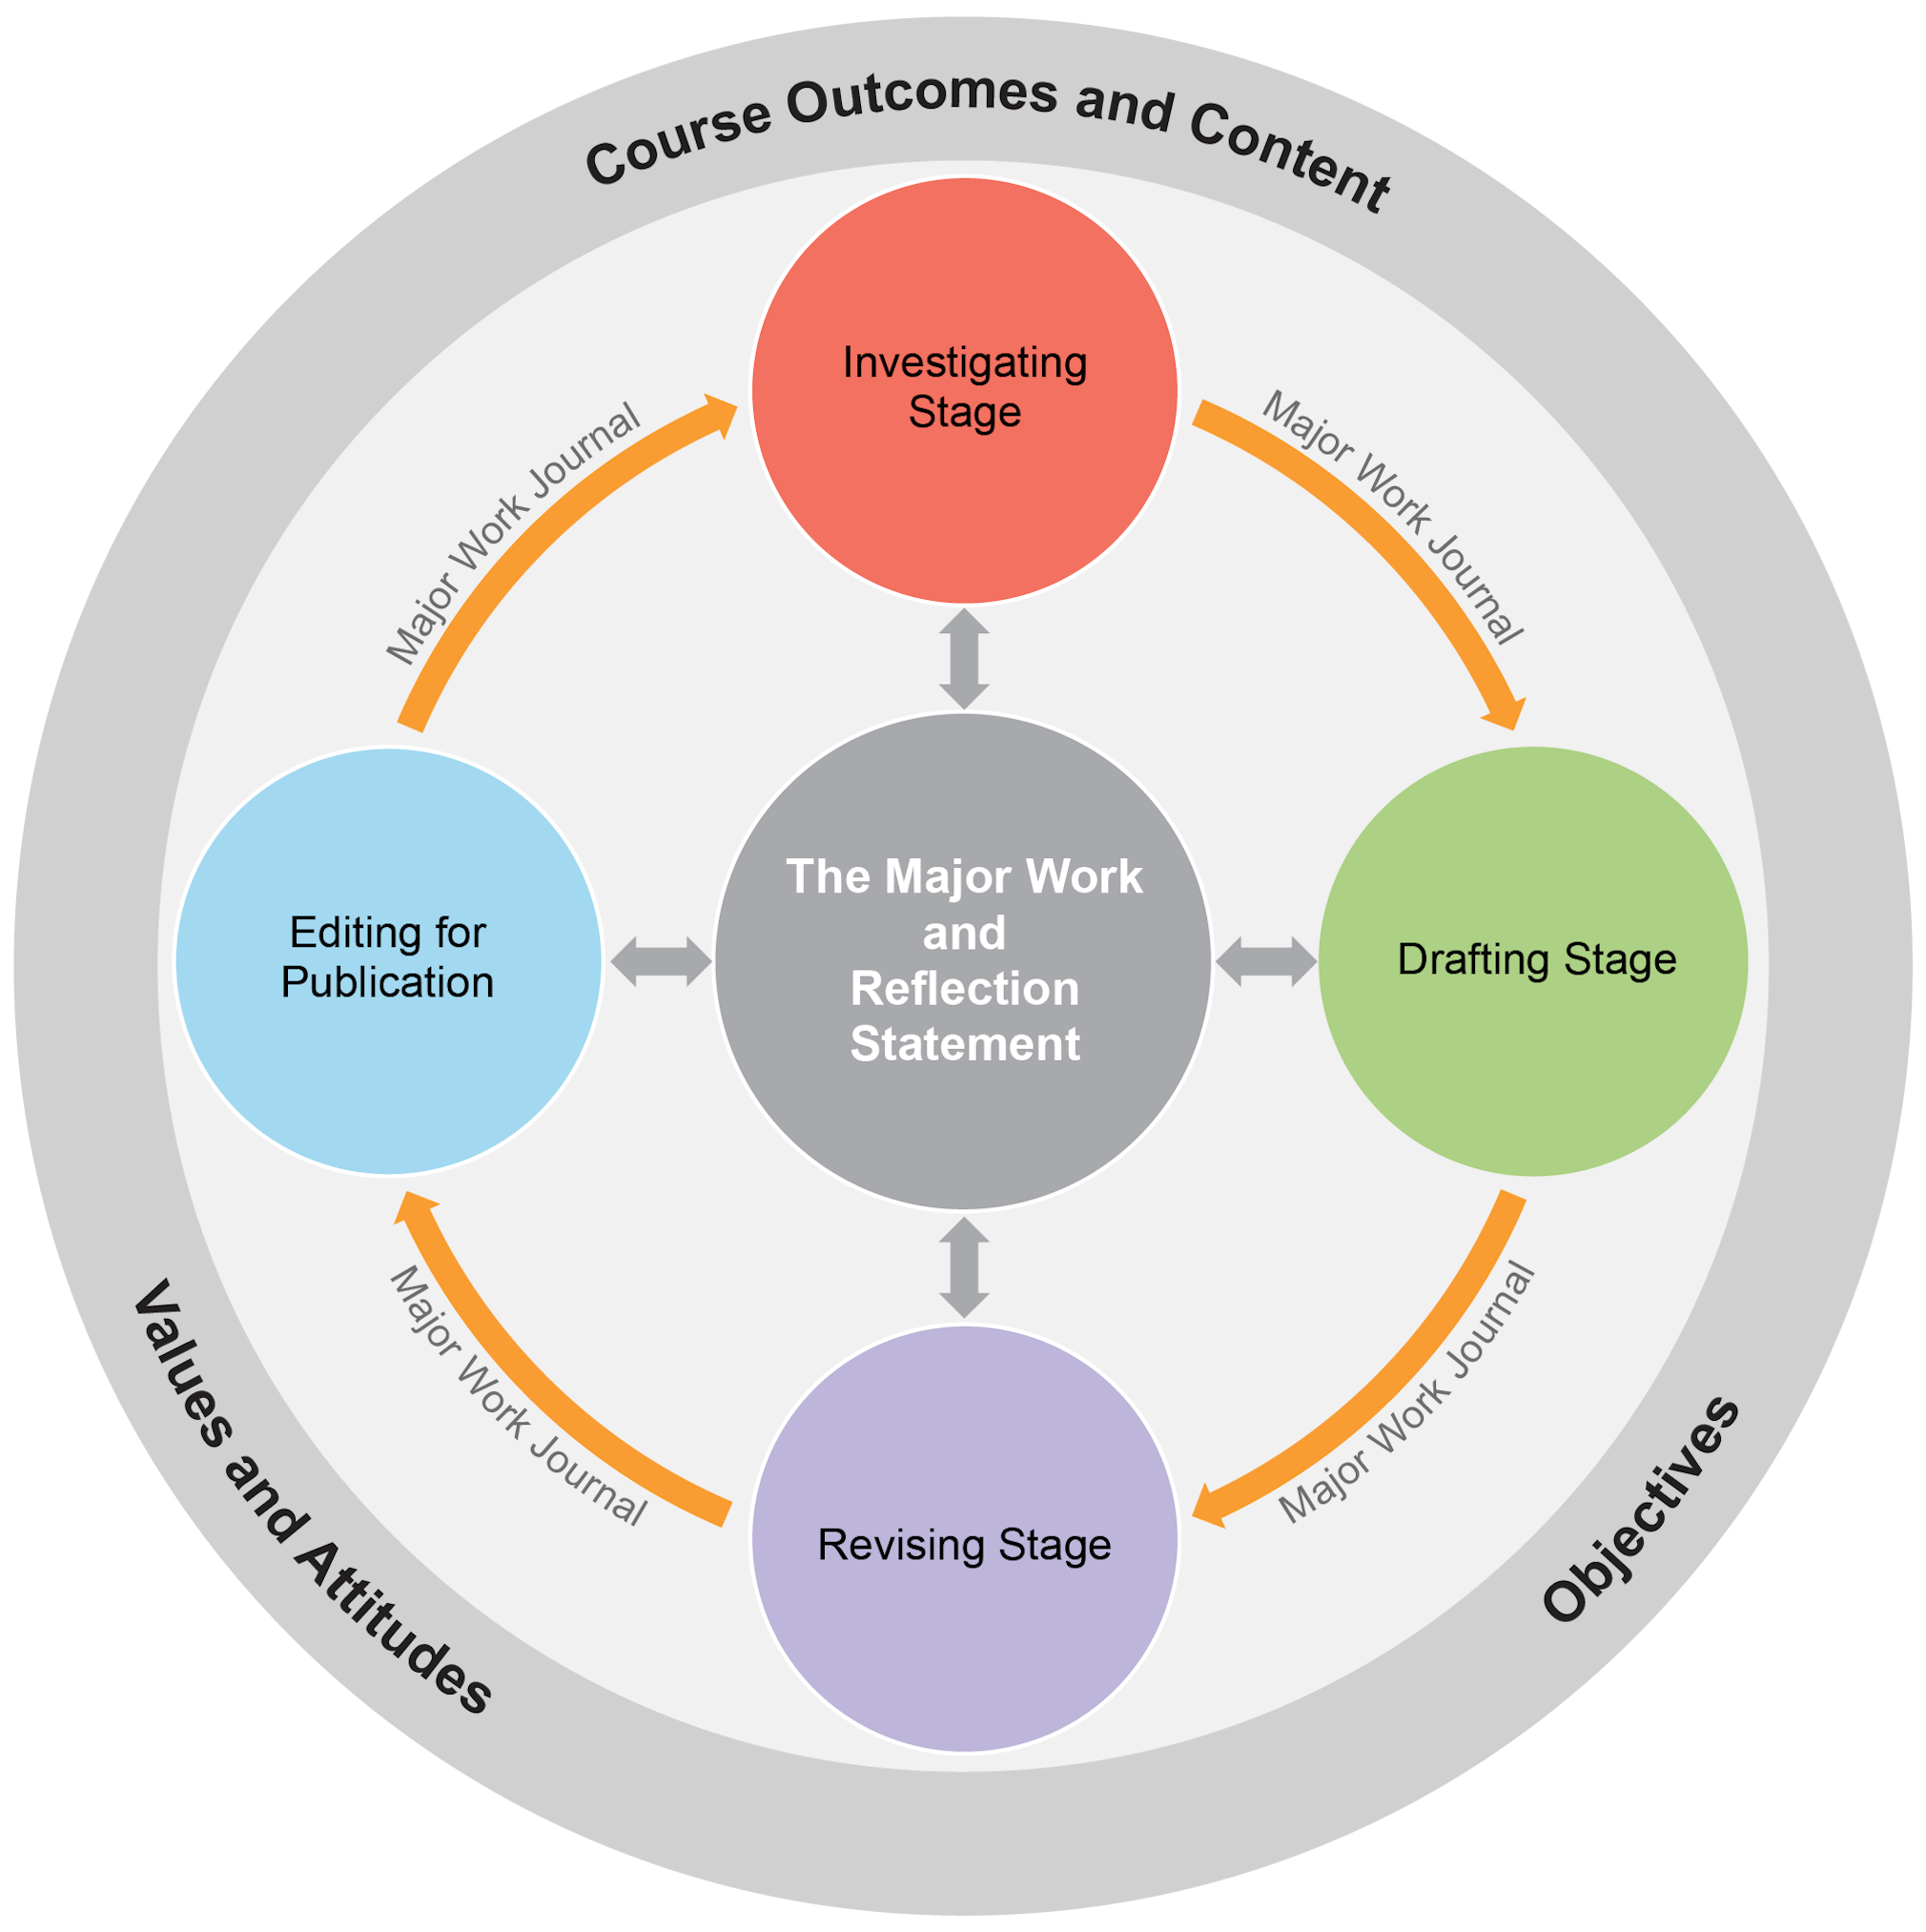 The organisation of content diagram consists of a central circle labelled The Major Work and Reflection Statement. The central circle is connected via two way arrows to four surrounding circles: Investigating Stage, Drafting Stage, Revising Stage and Editing for Publication. Each of these four circles are connected via arrows labelled Major Work Journal. The diagram is enclosed in an outer ring showing Course Outcomes and Content, Objectives, and Values and Attitudes.